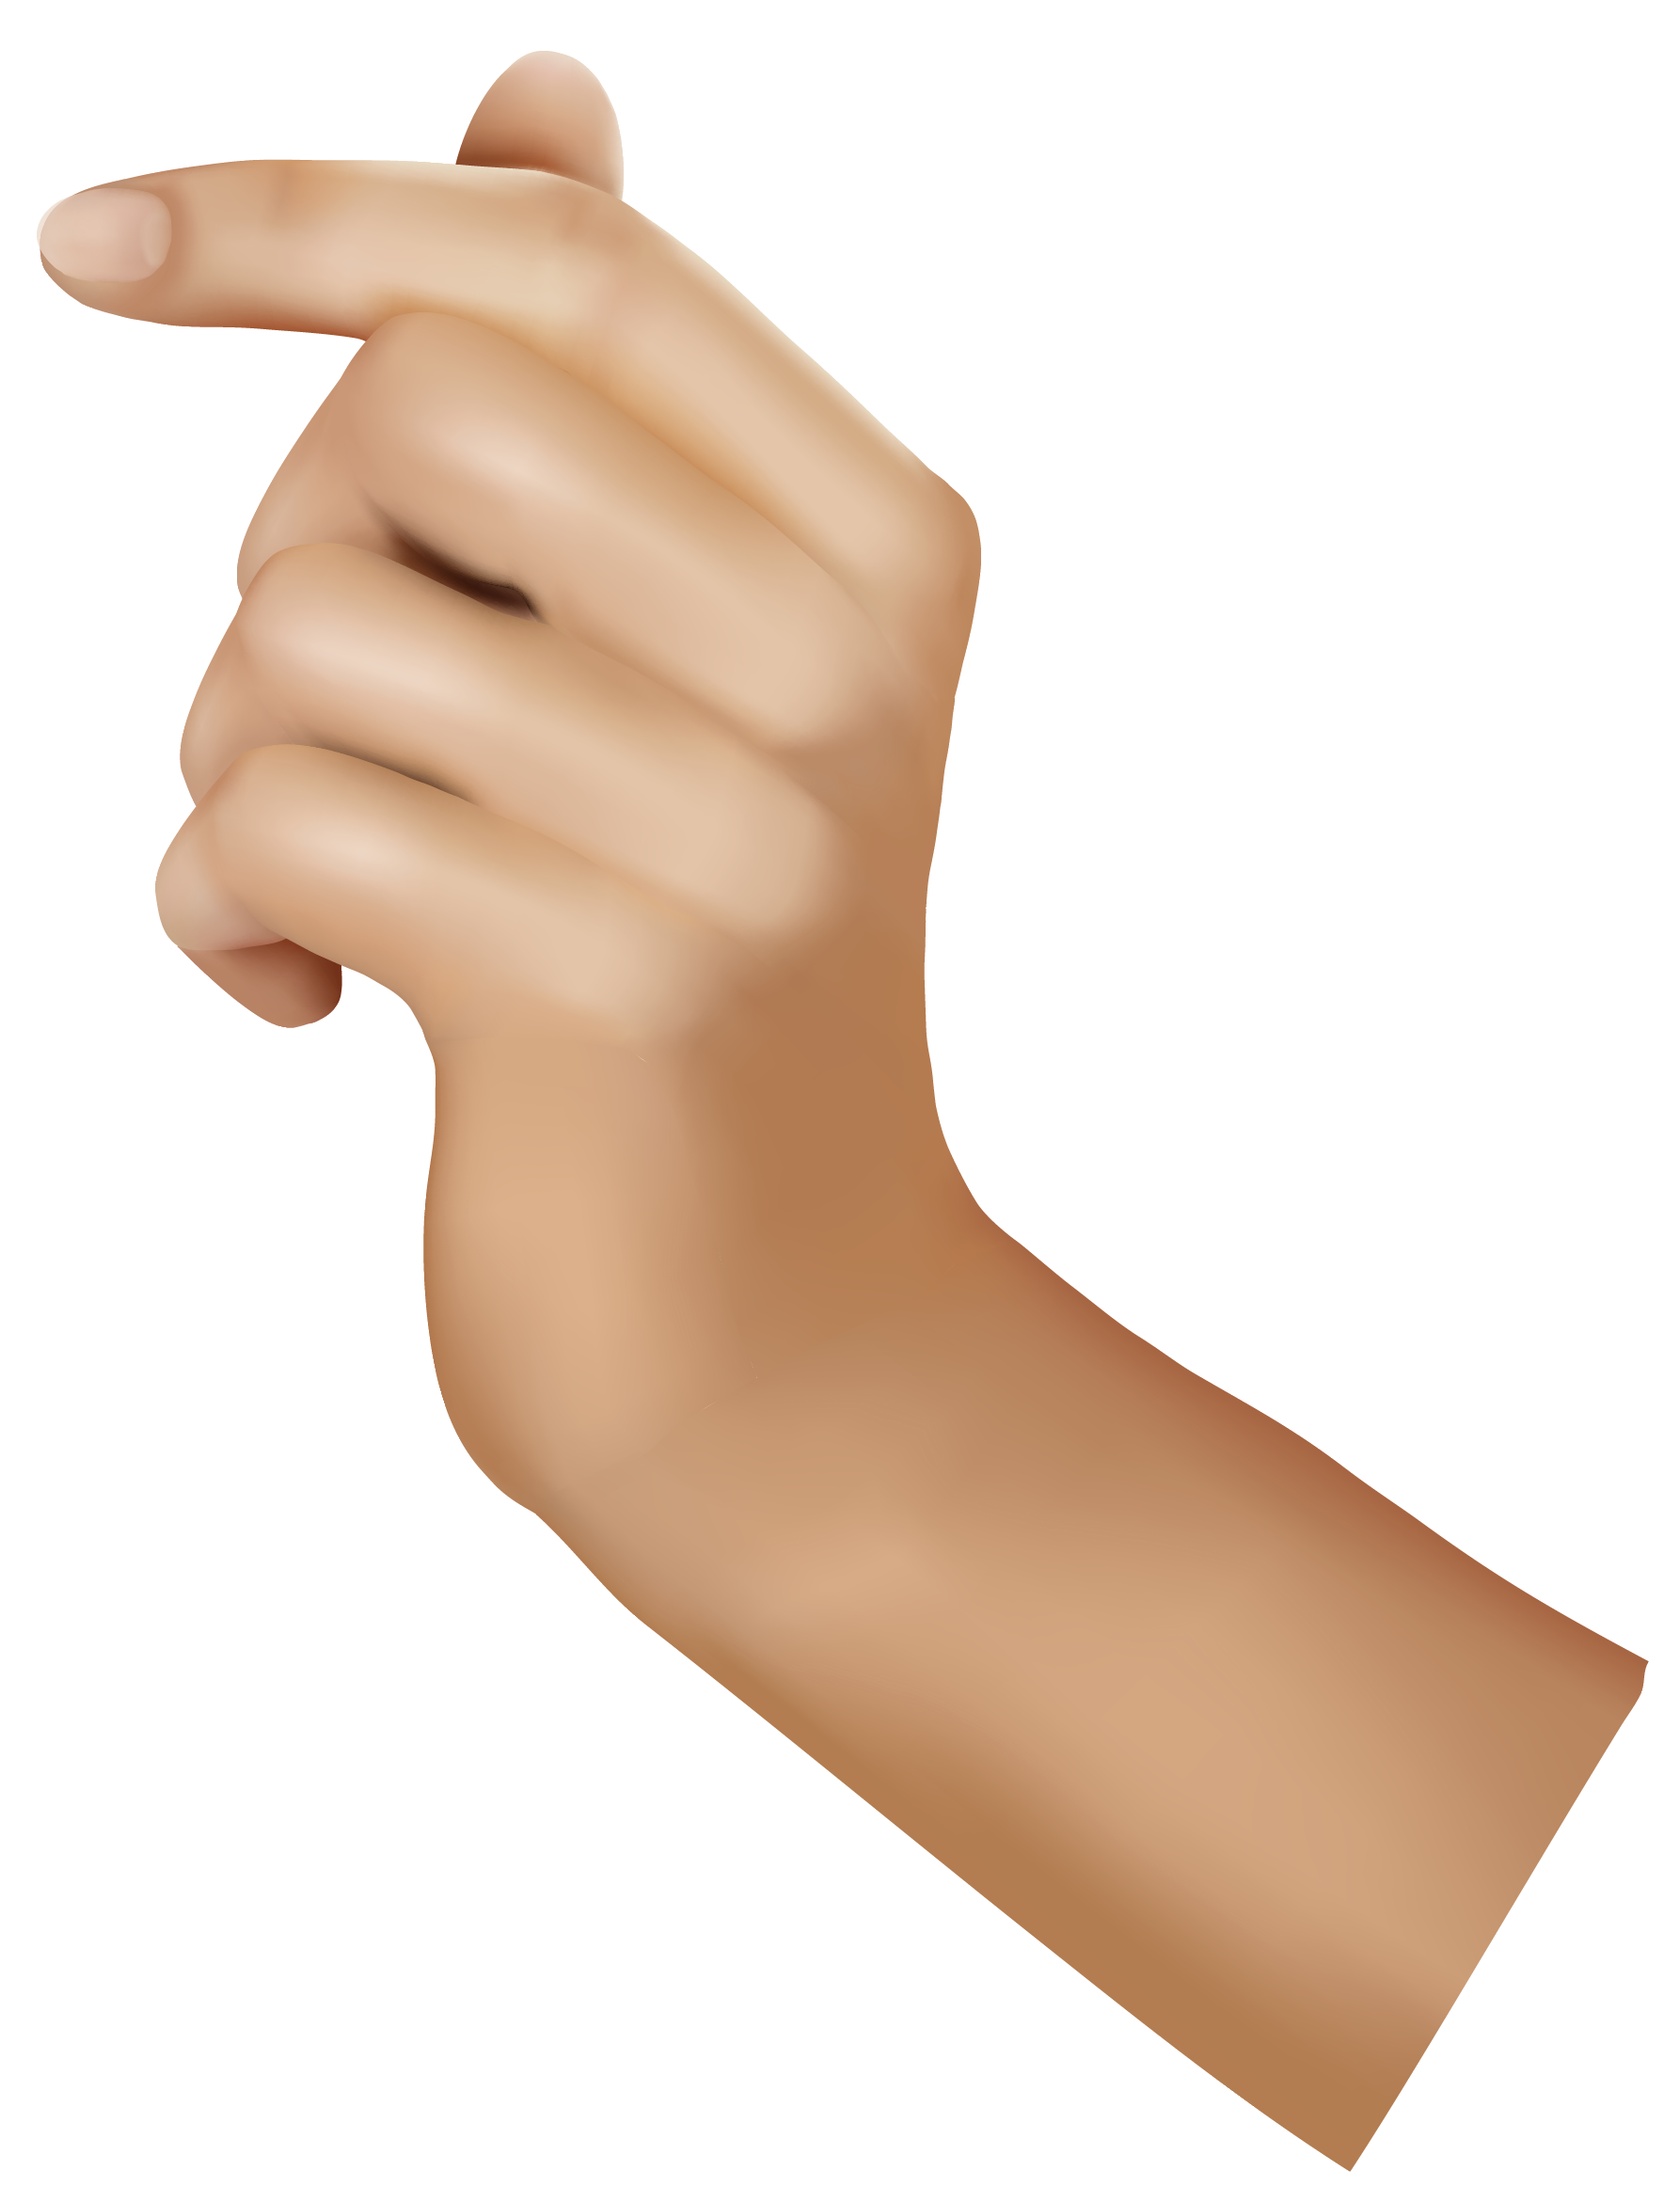 Hand clip human. Png clipart image gallery